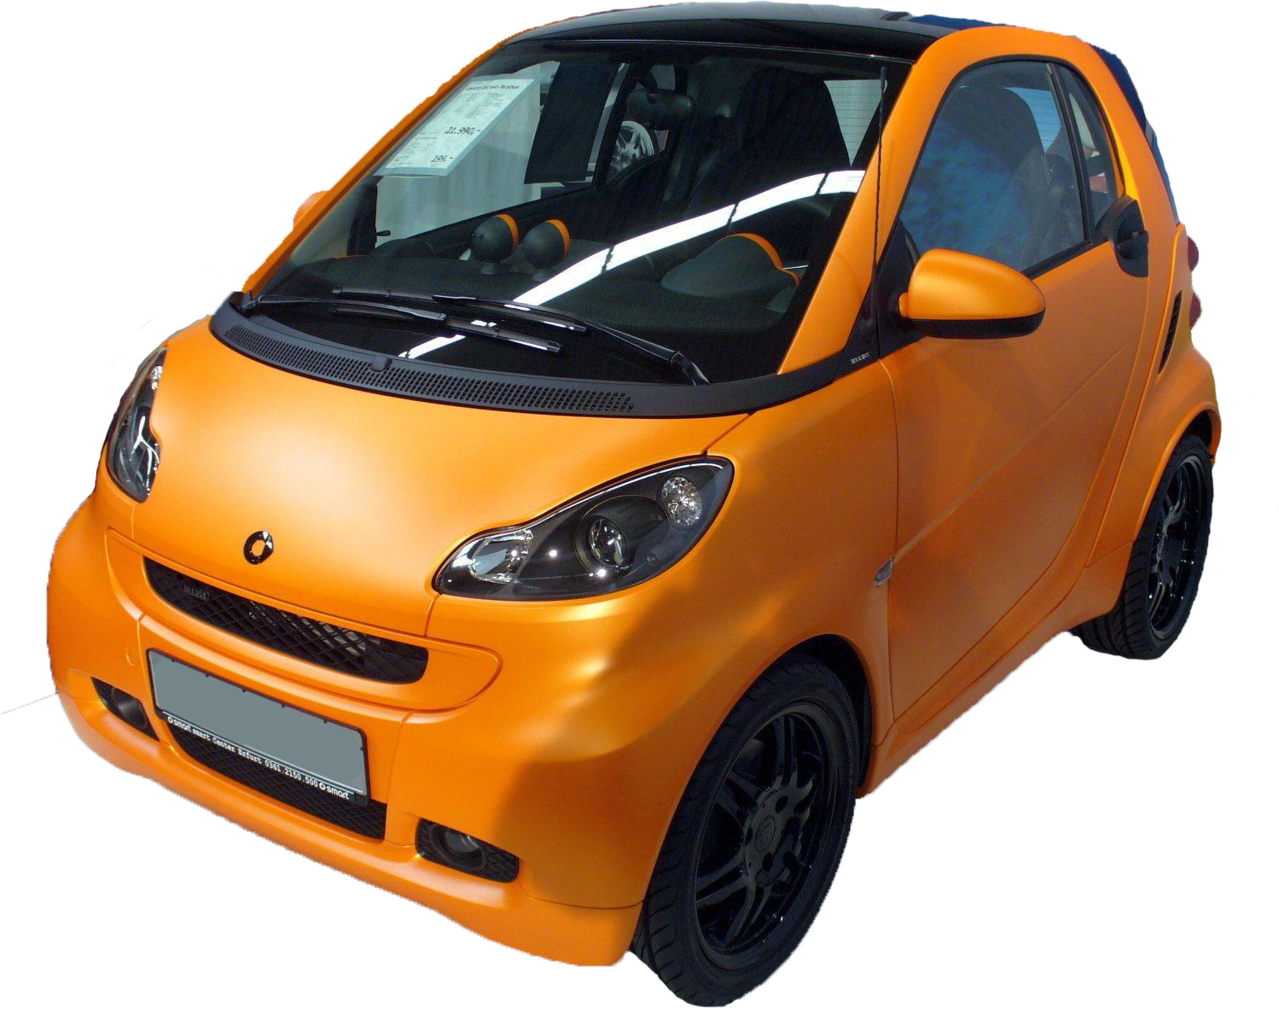 Smart Car Brabus For Sale